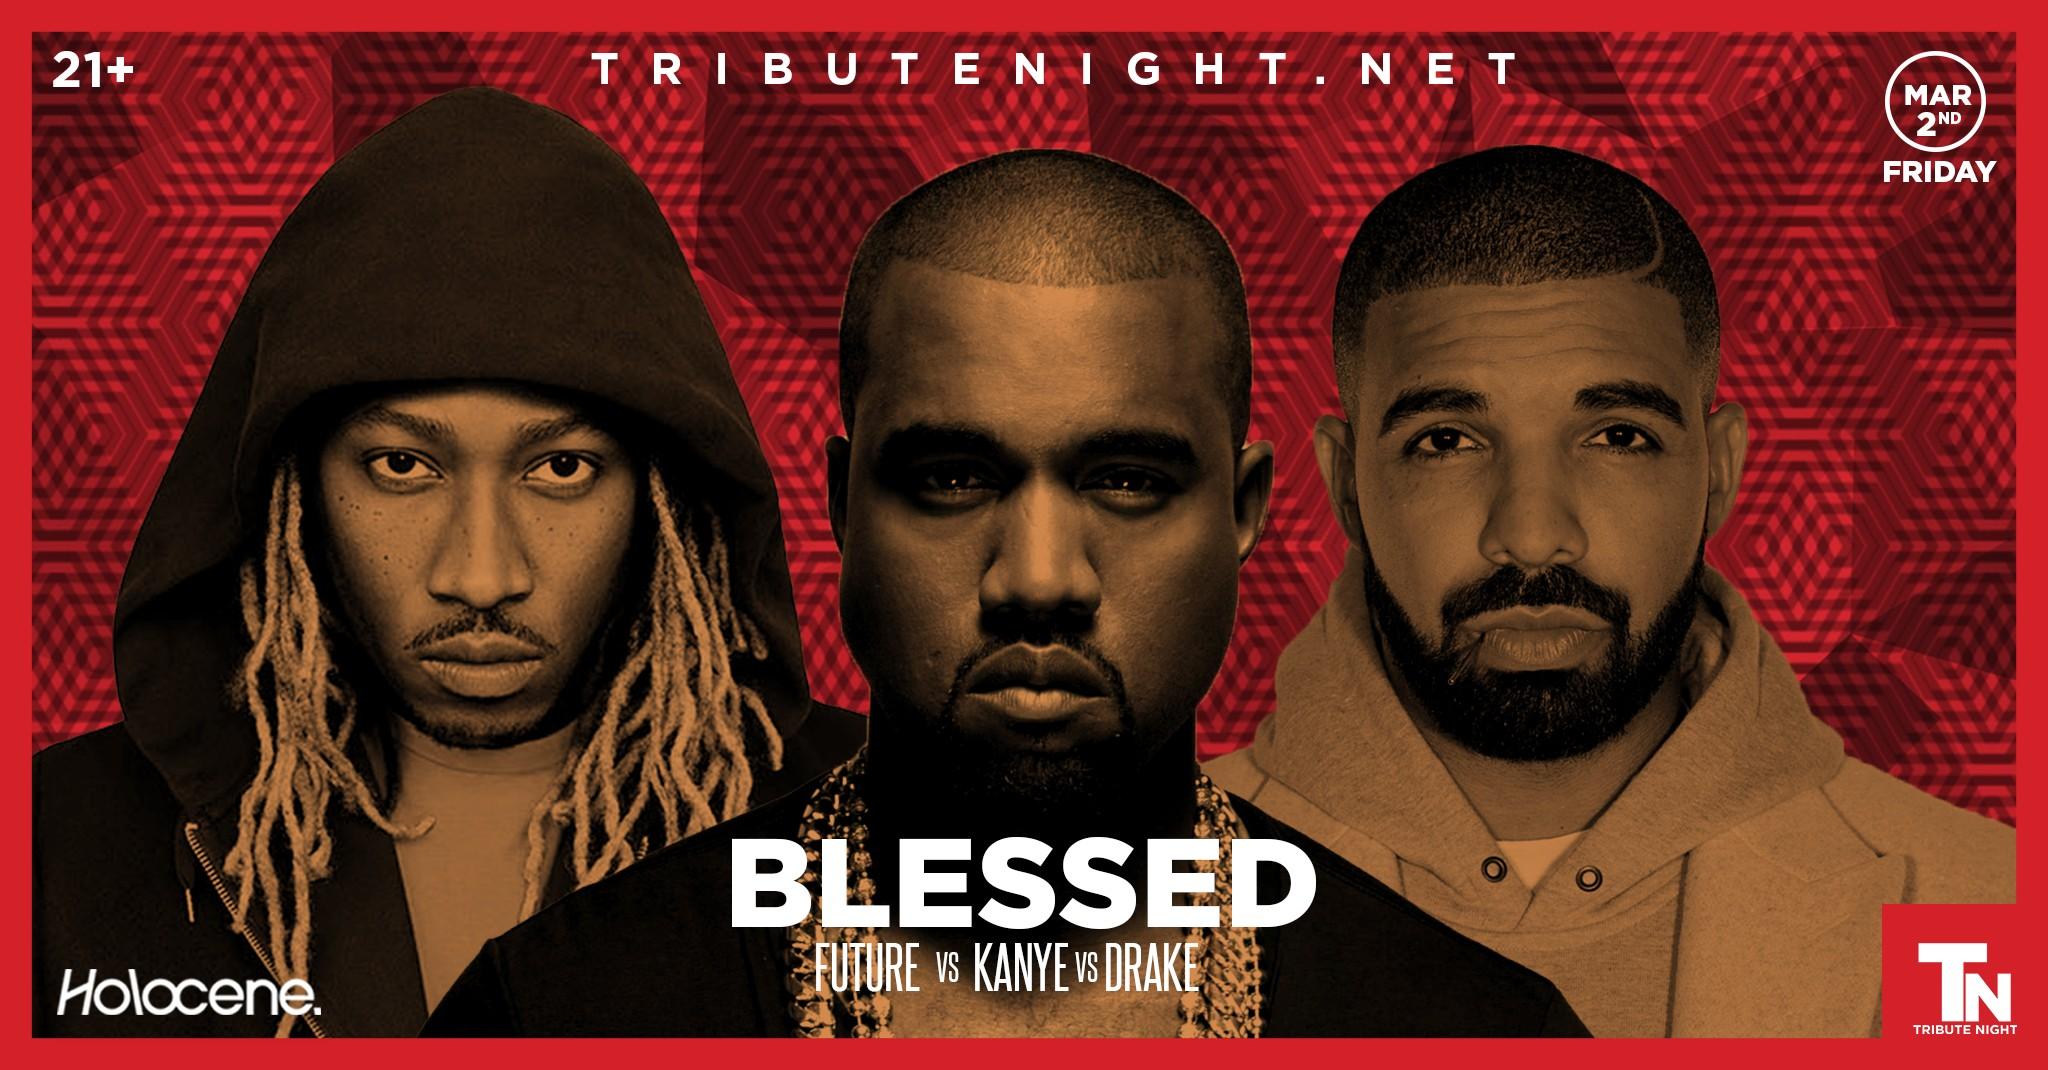 Tribute Night Presents: Blessed - Future vs Kanye vs Drake Tickets |  Holocene | Portland, OR | Fri, Mar 2, 2018 at 8pm | Mercury Tickets